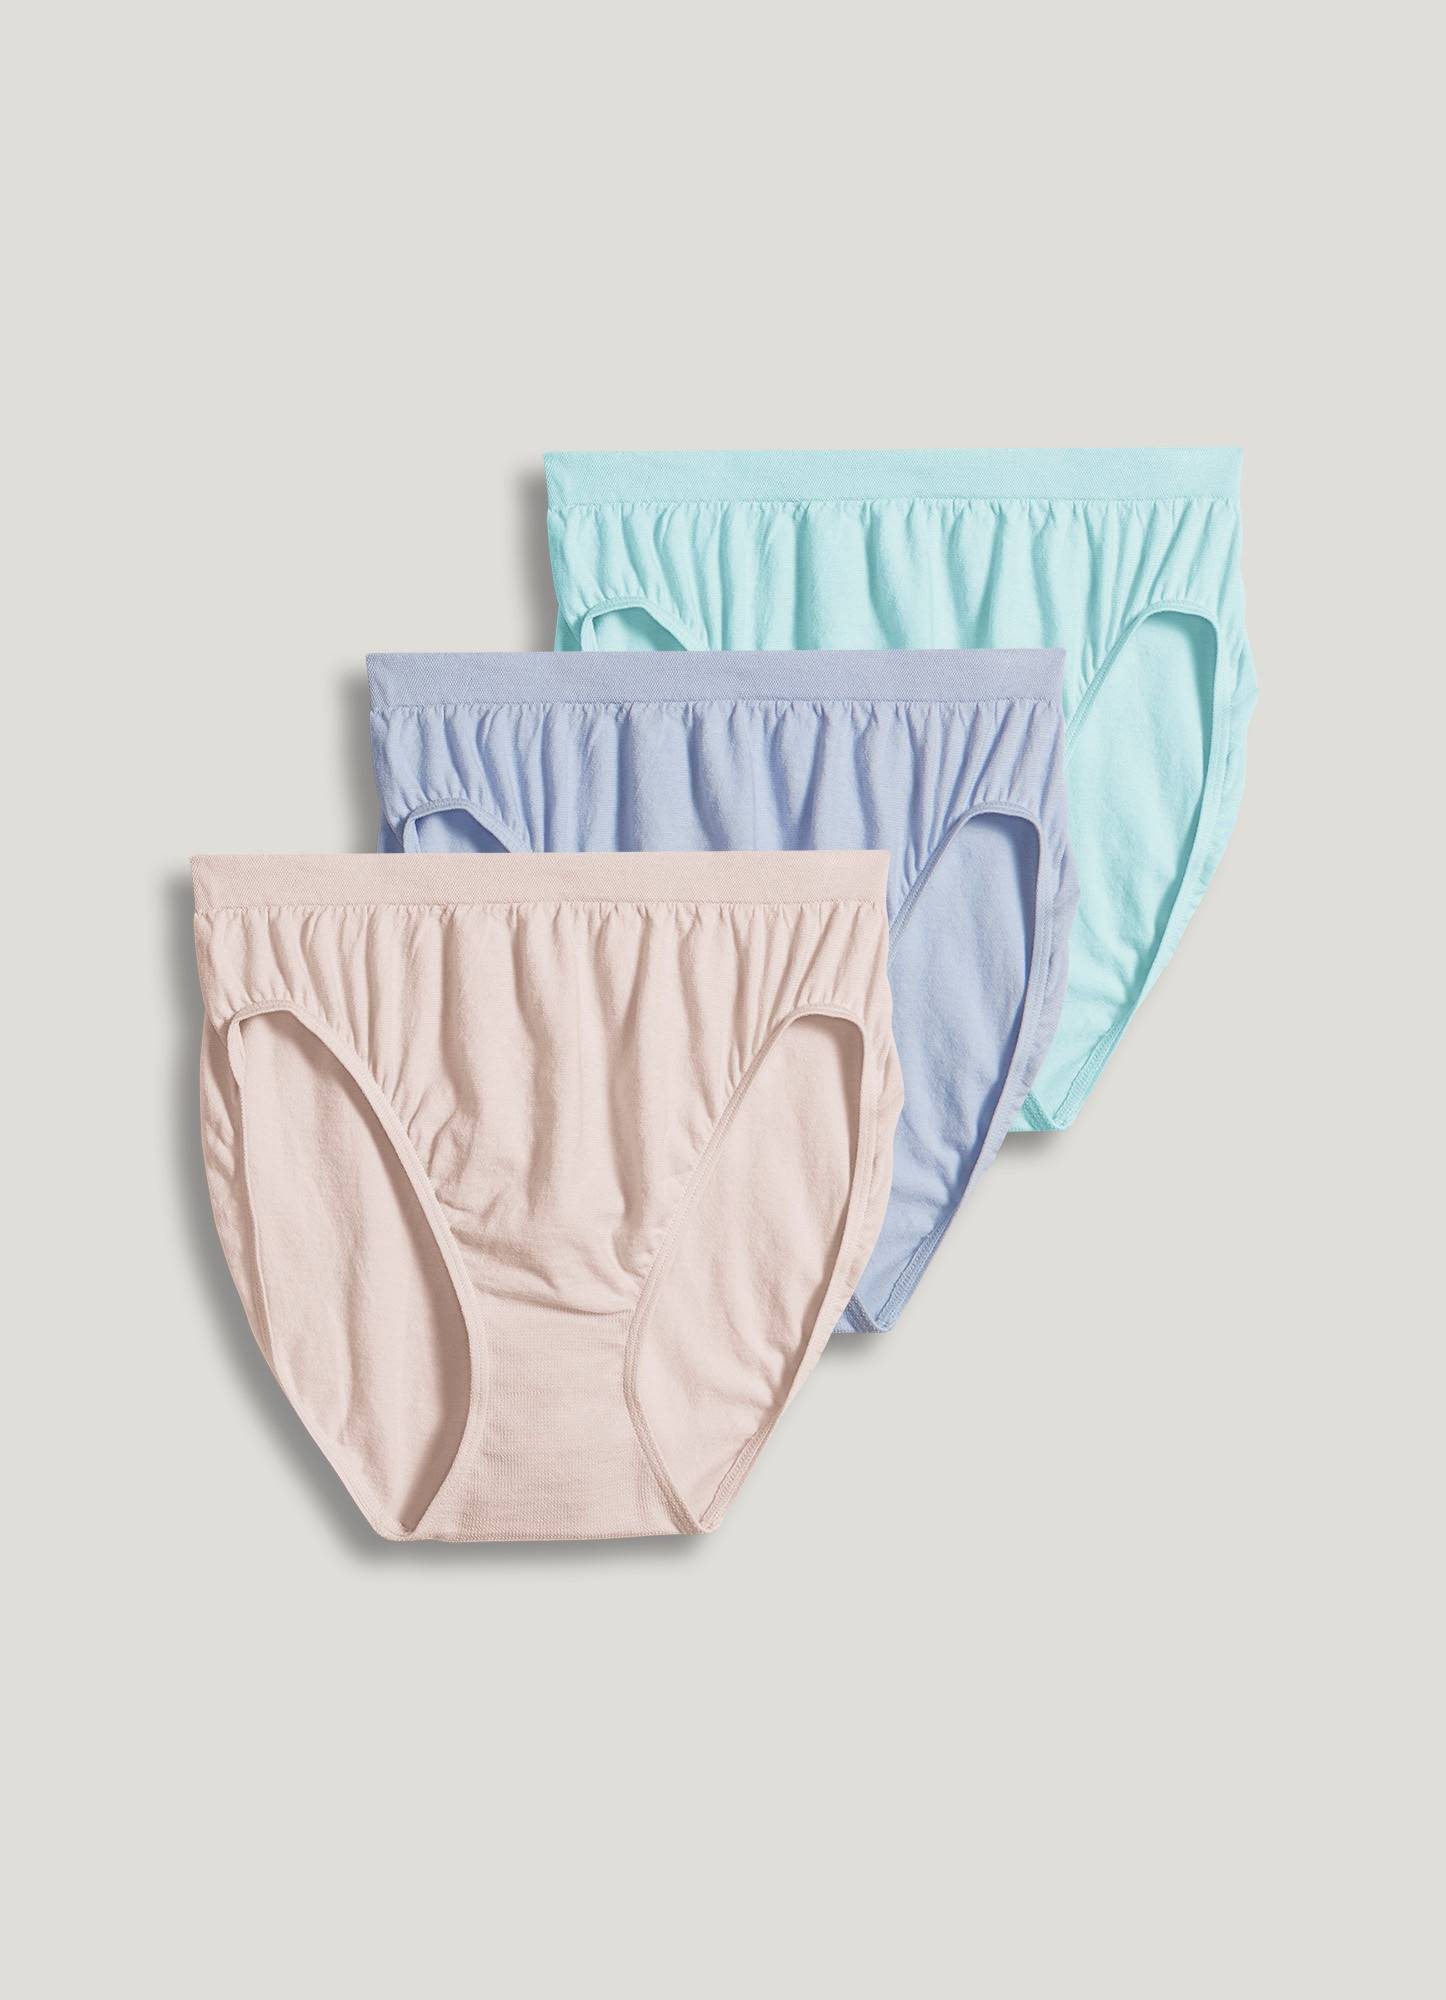 2018 shoes to buy for sale Jockey | Comfies | Cotton French Cut | Panties